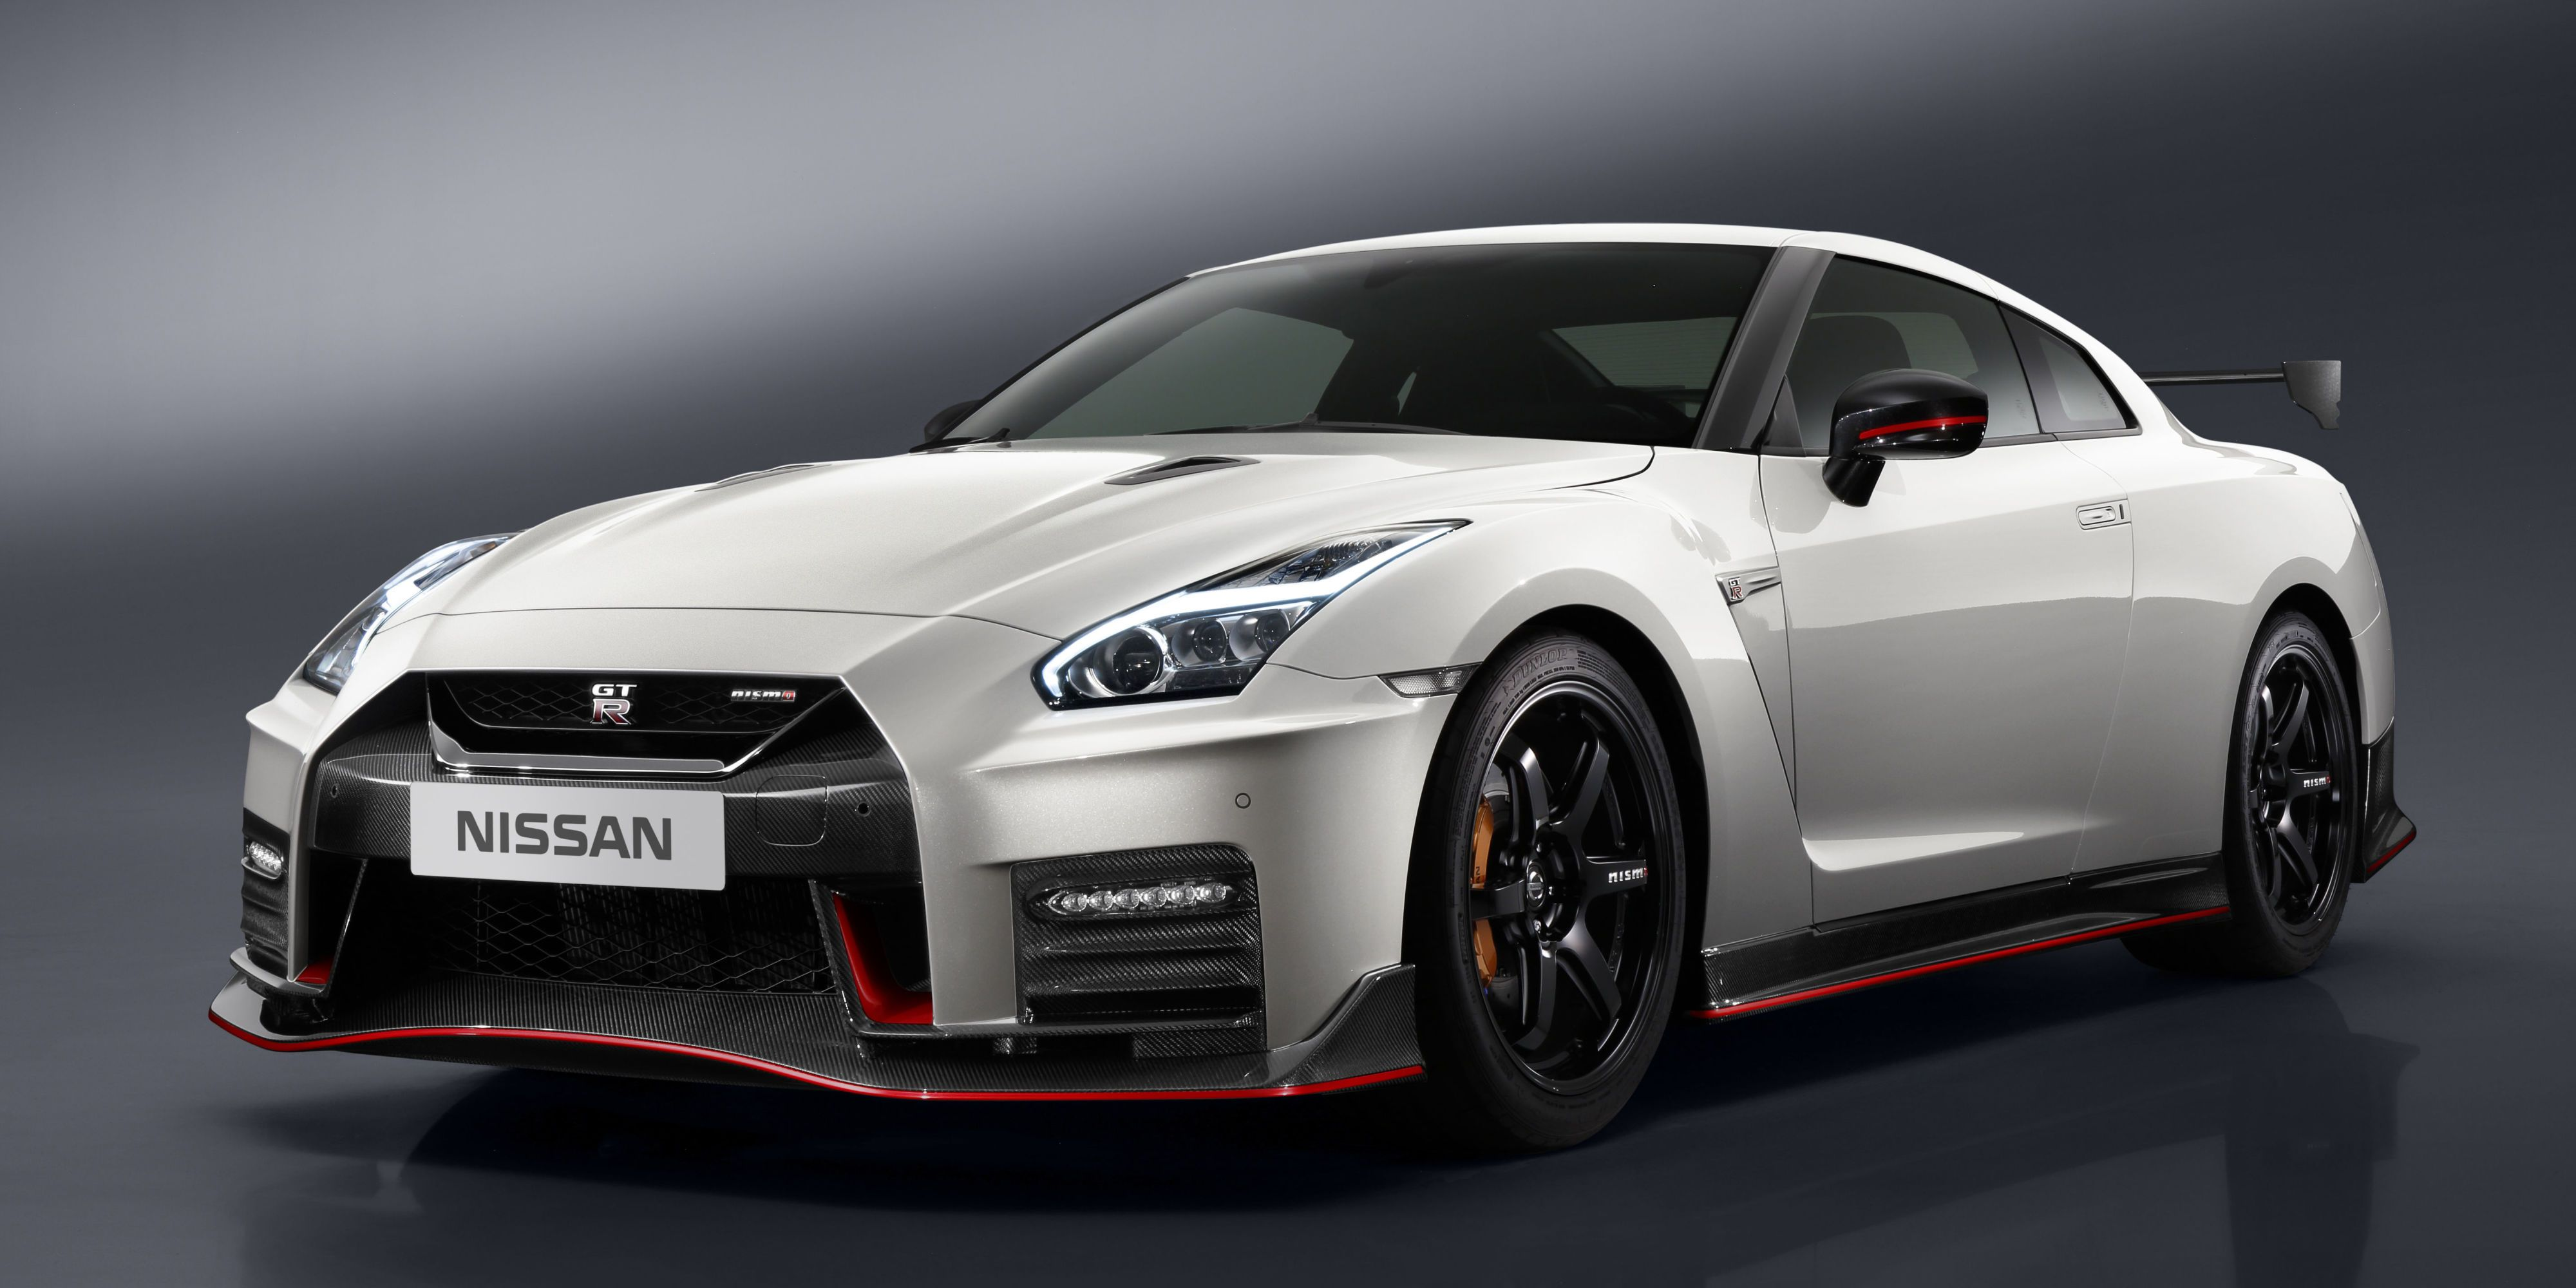 Nissan Recently Refreshed The Regular GT R For 2017, Which Meant A  Refreshed NISMO Version Was On The Way. Here It Is.